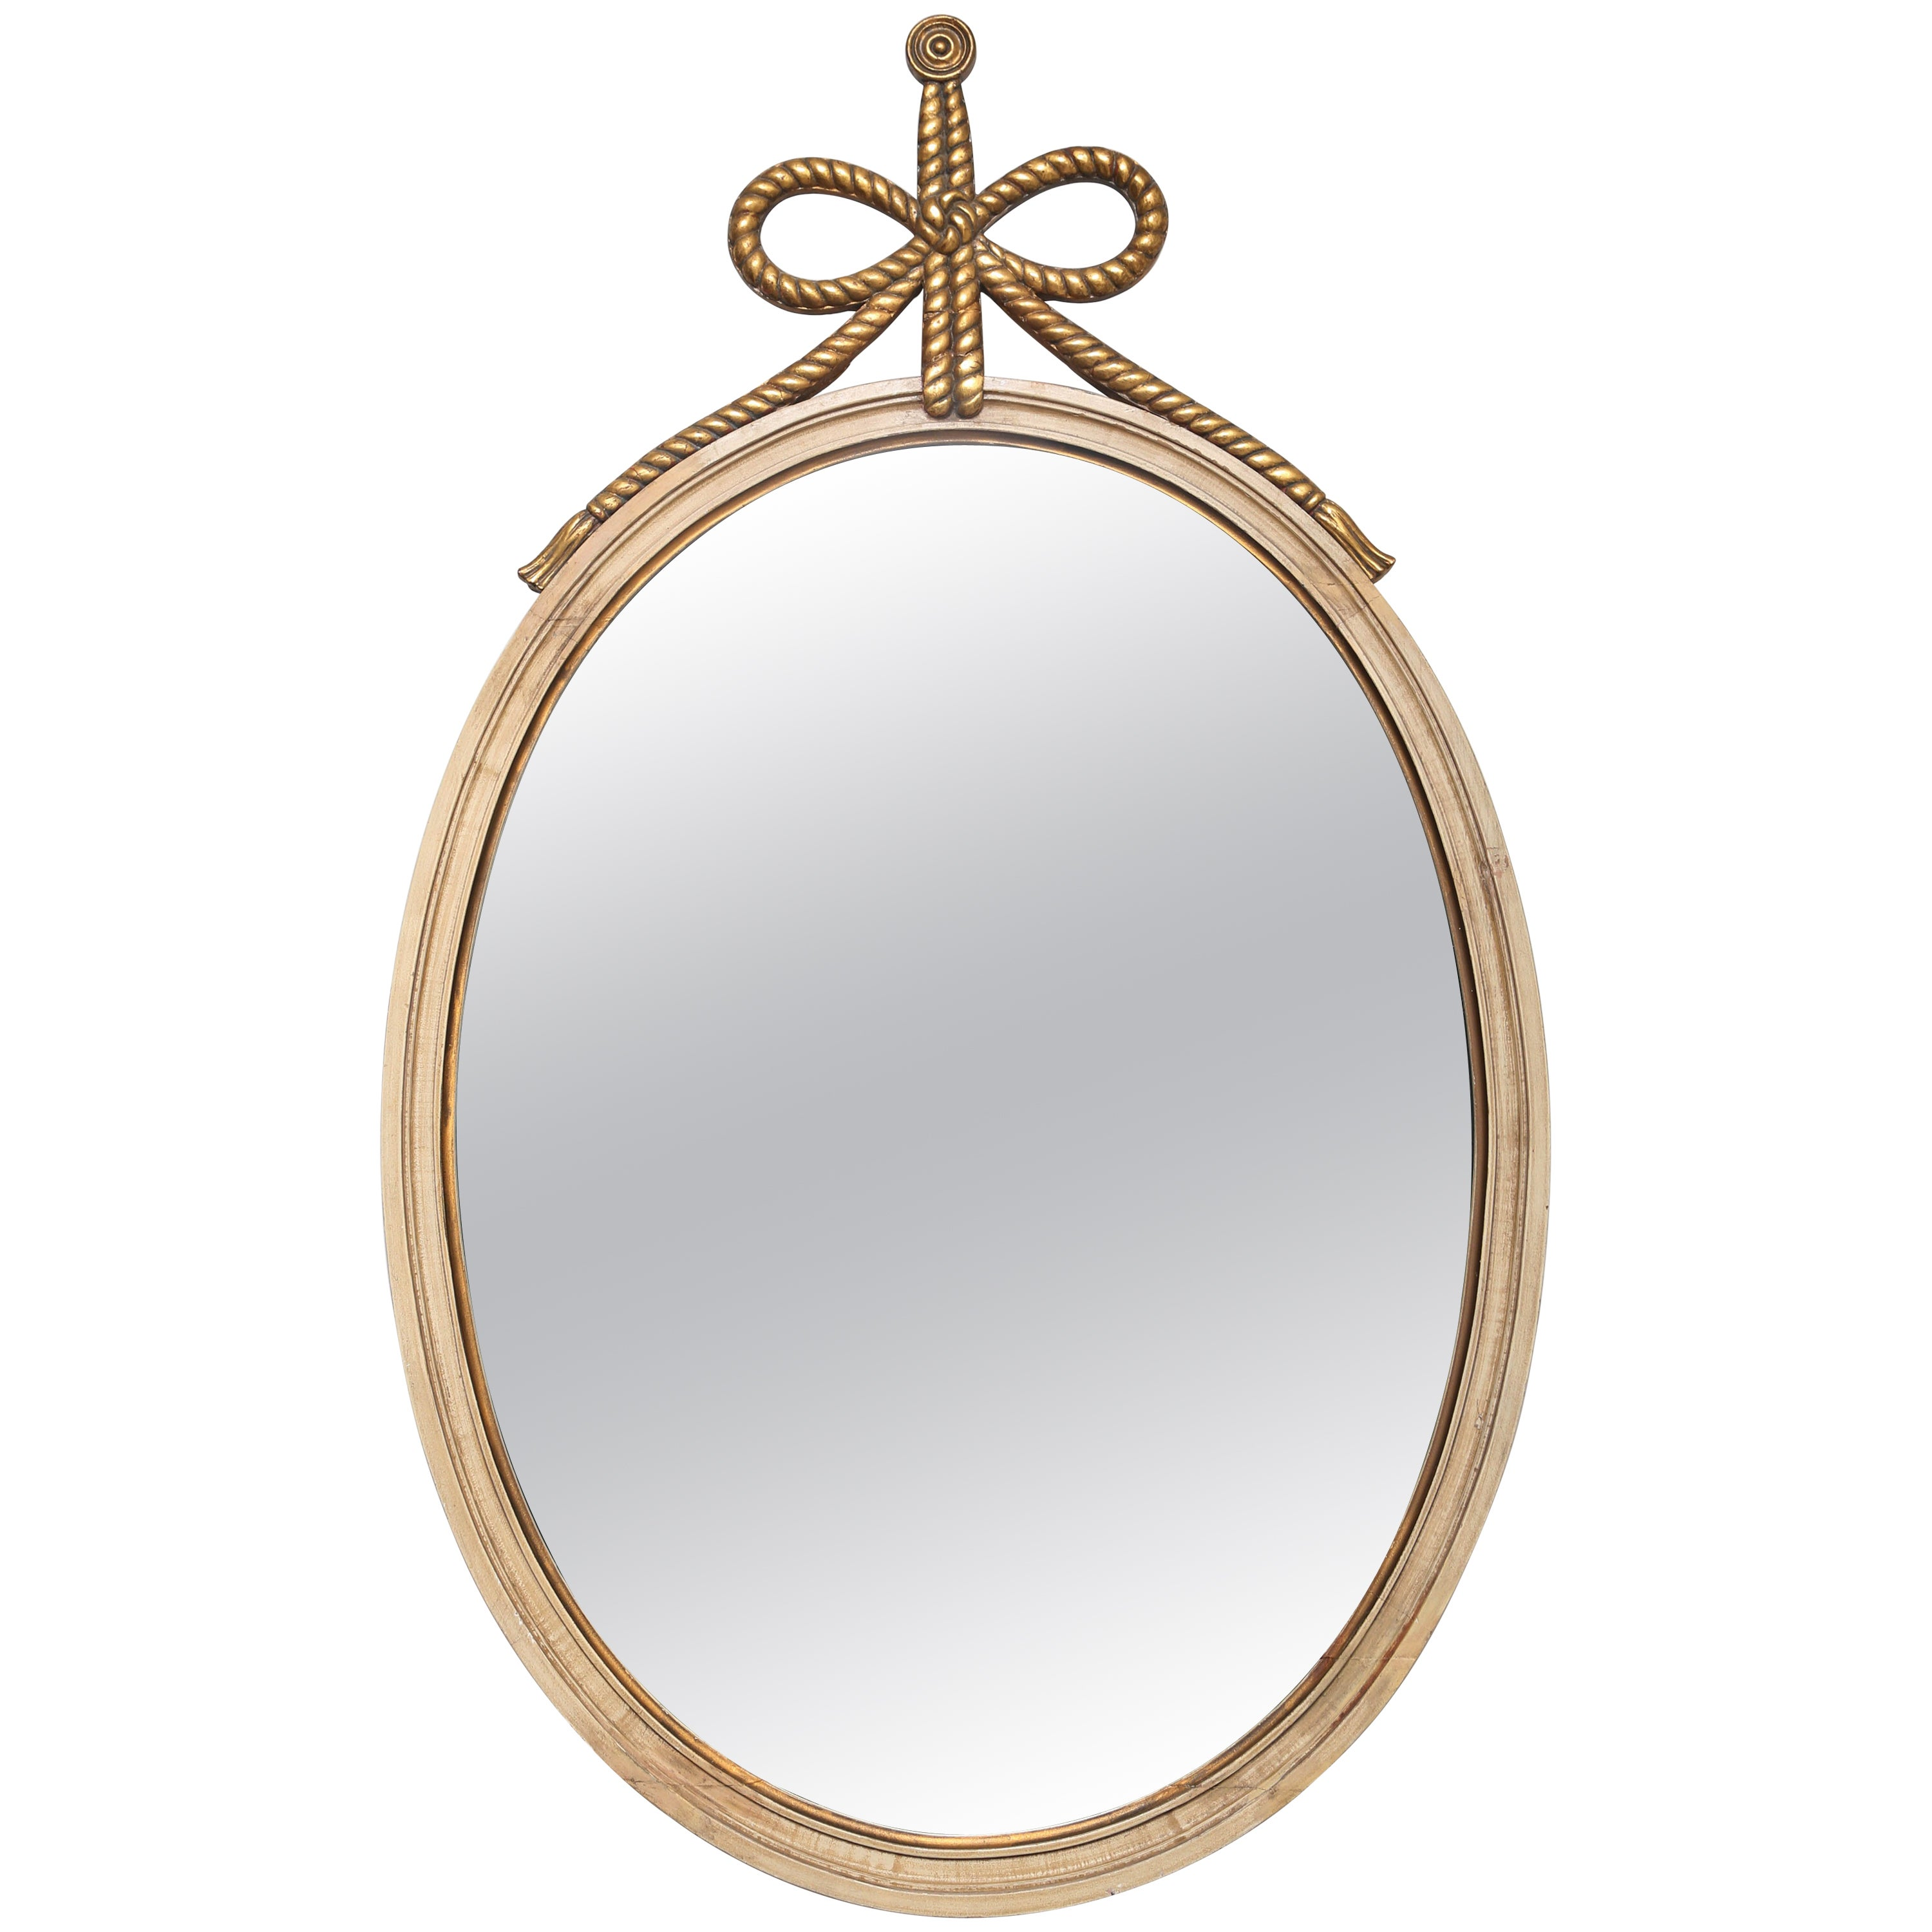 Italian Carved and Gilded Oval Mirror